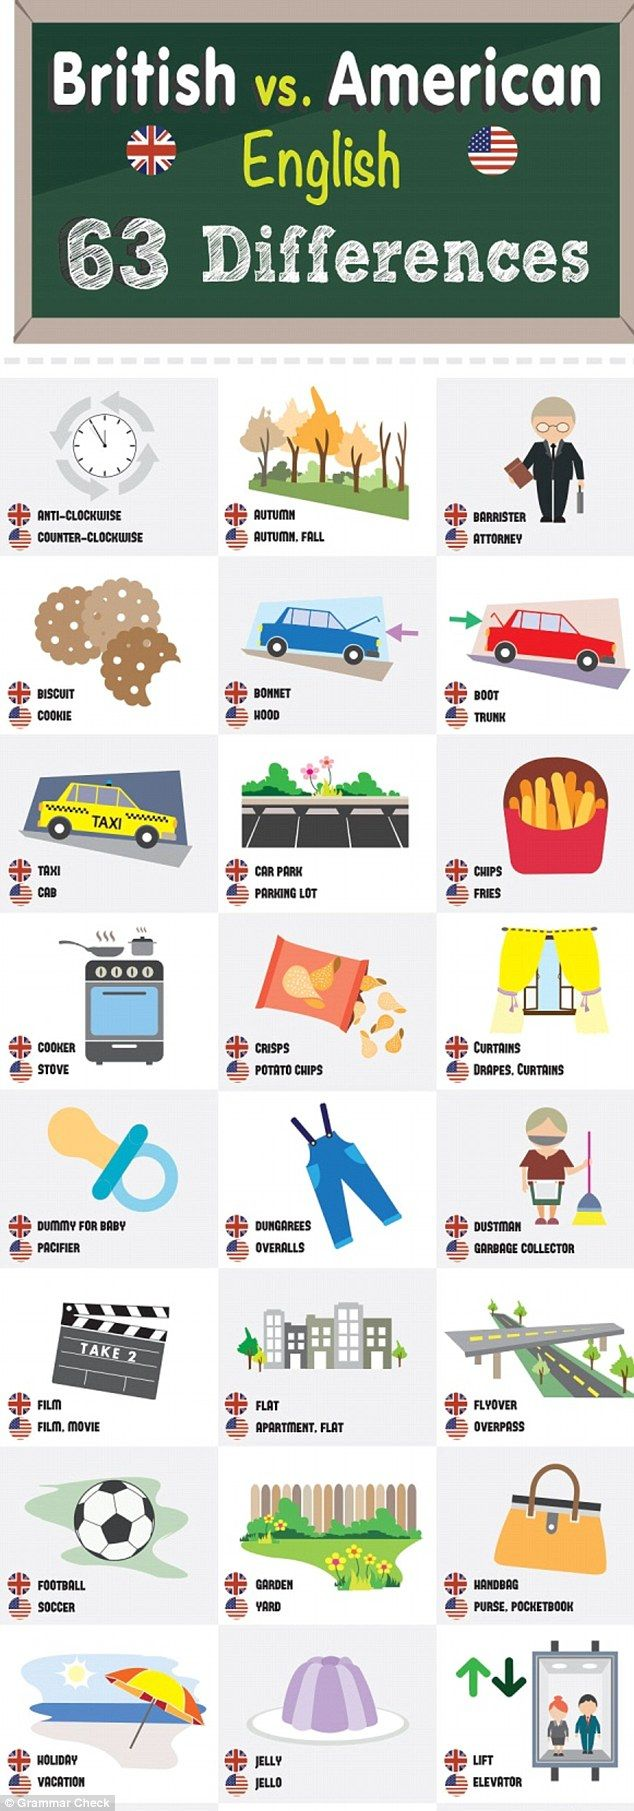 A handy infographic by Grammar Check has outlined 63 of the main differences between British and American English